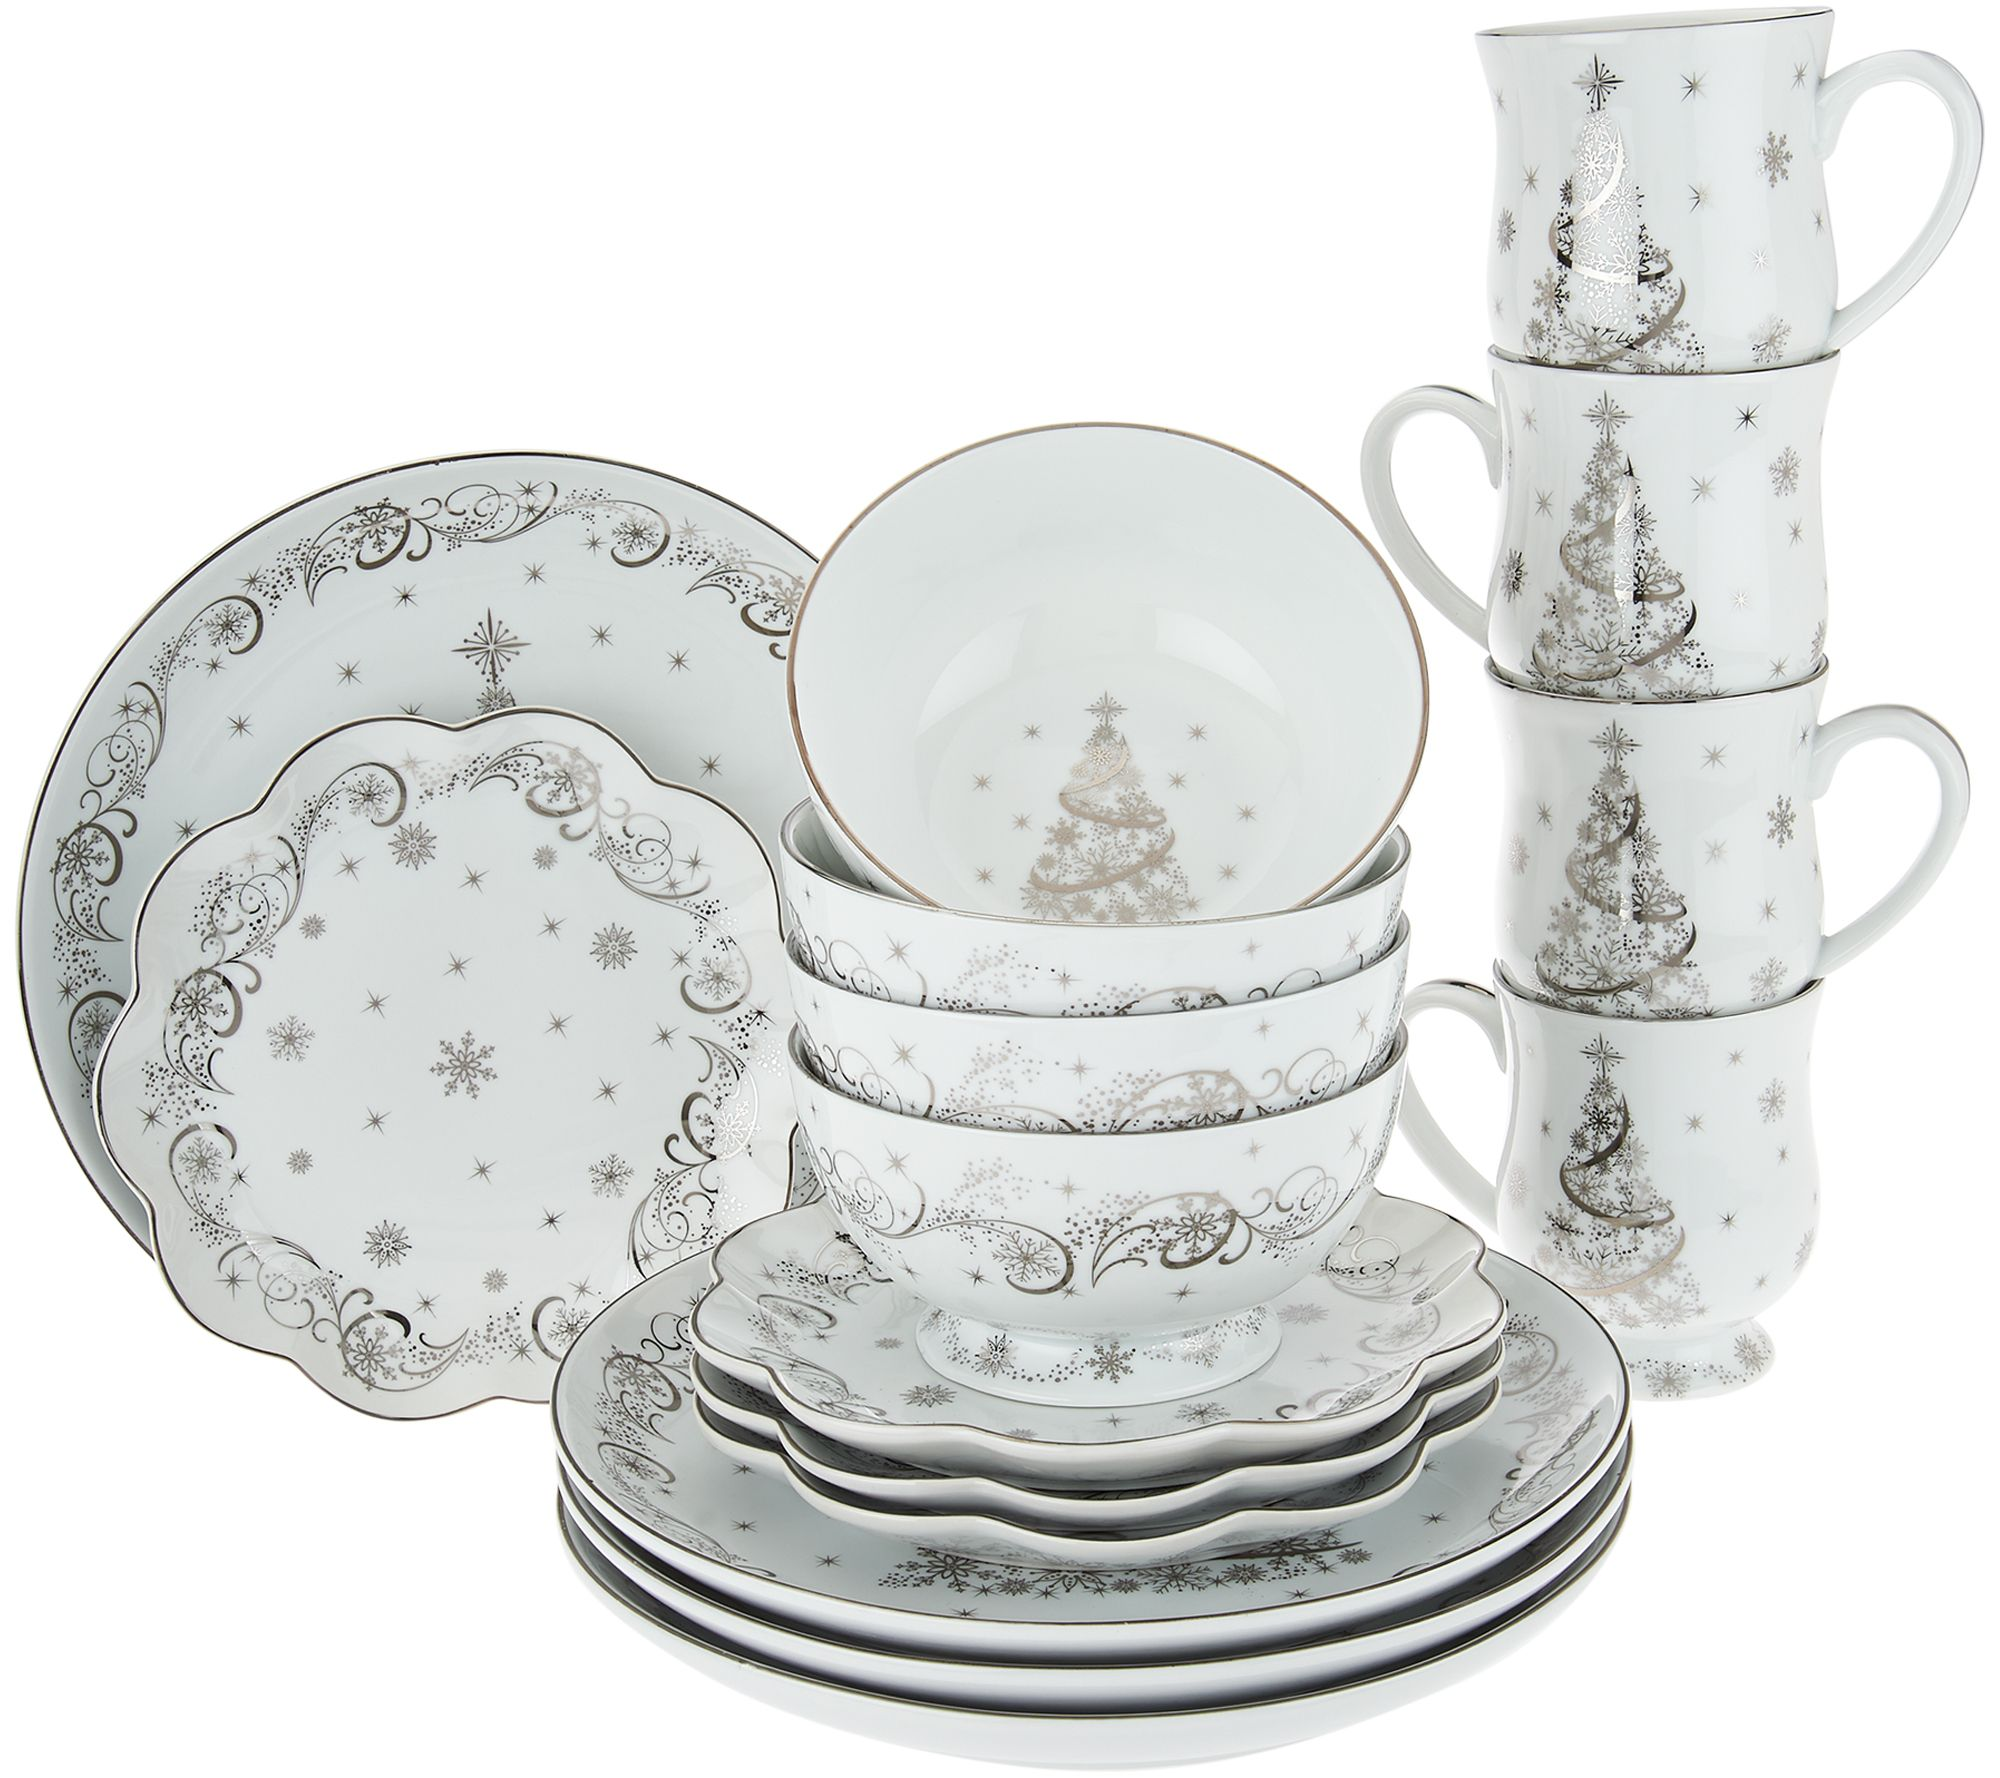 Quot As Is Quot Temp Tations 16 Pc Dinnerware Set Choice Winter Christmas Eve Page 1 Qvc Com